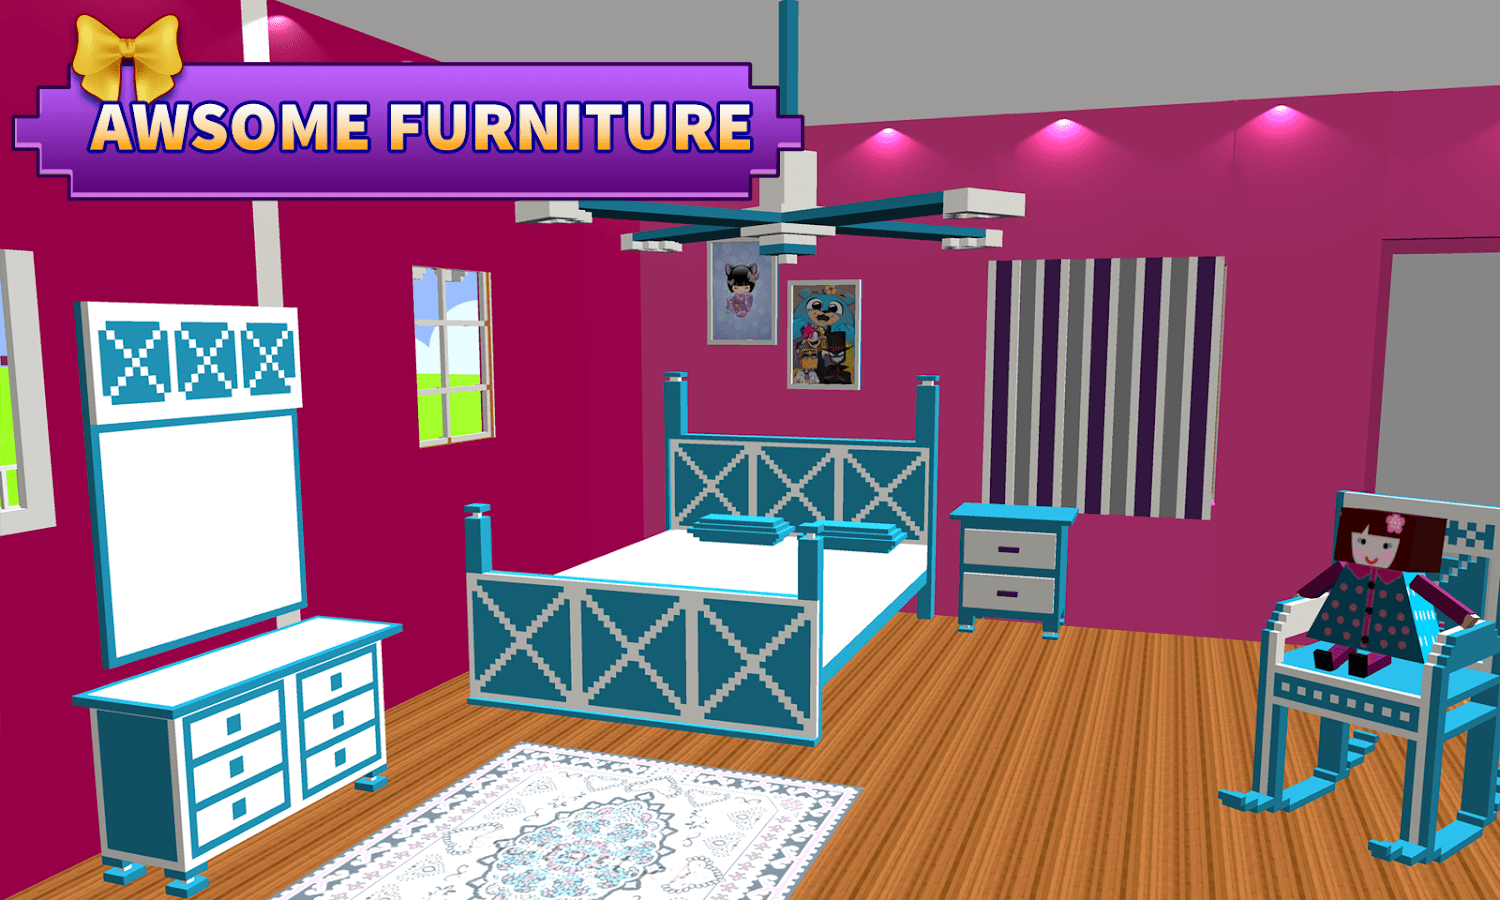 Doll House Decorating Games My New Room 2